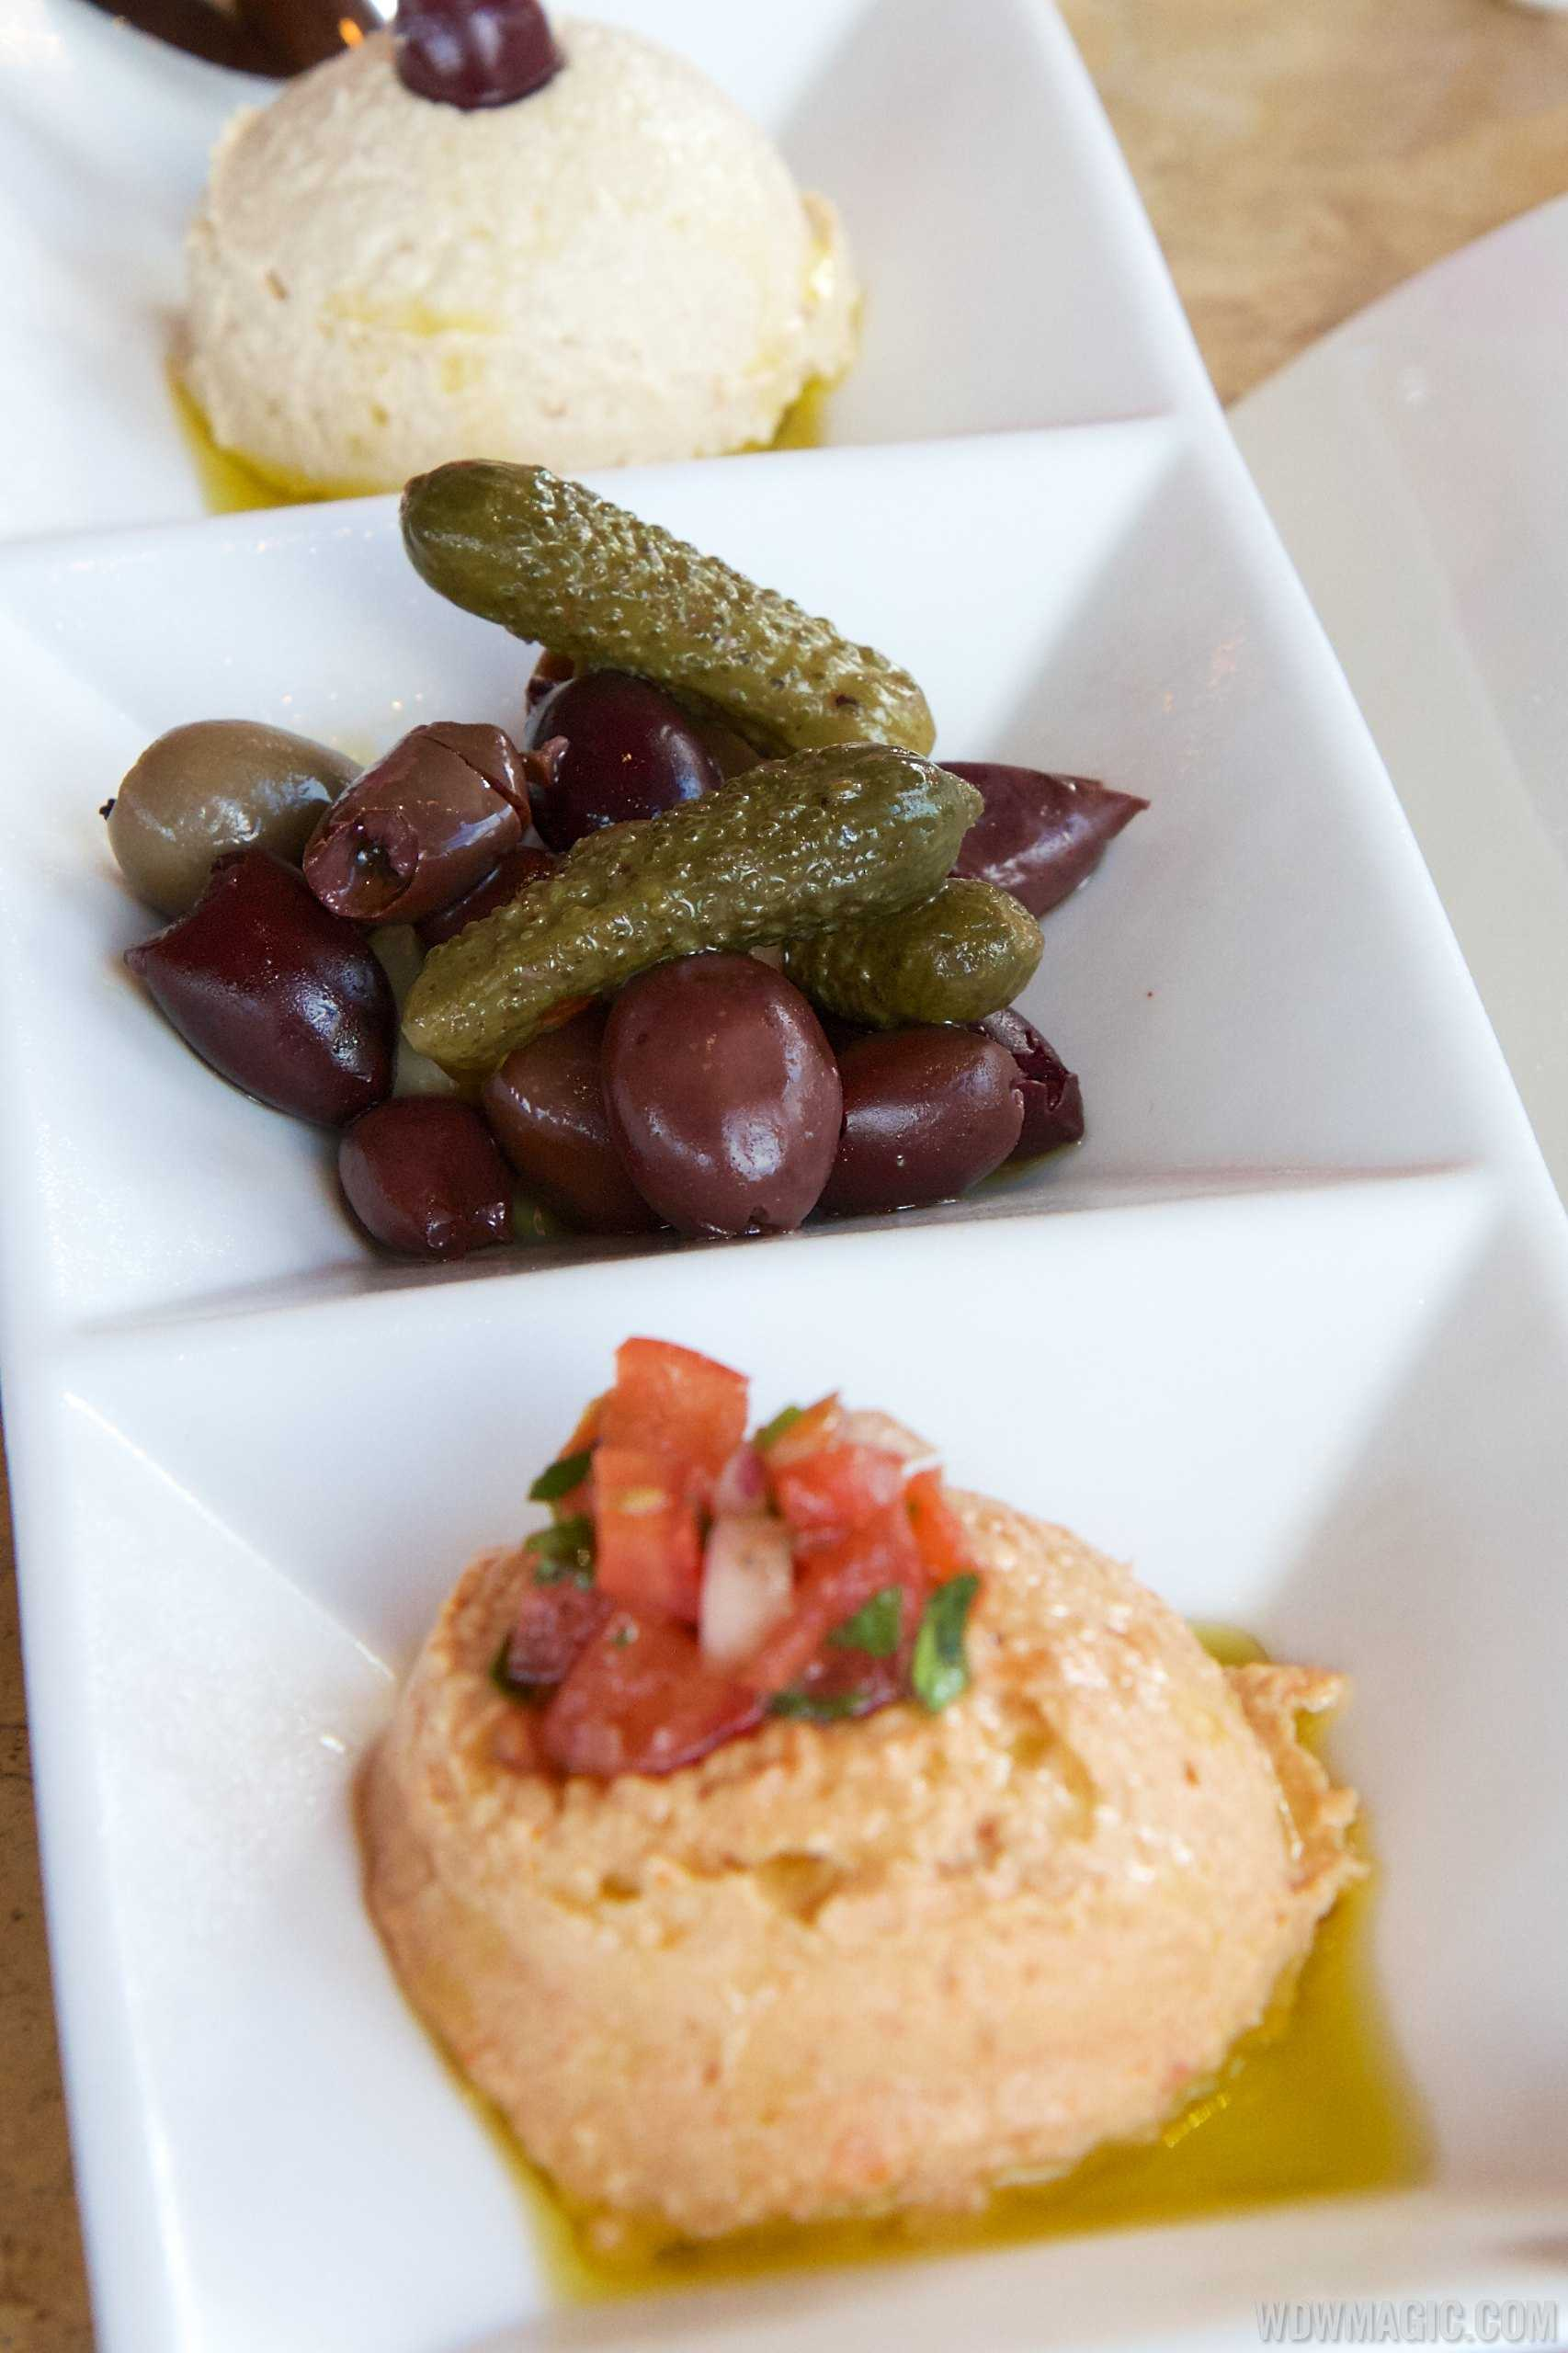 Spice Road Table - Imported Olives and Hummus $10